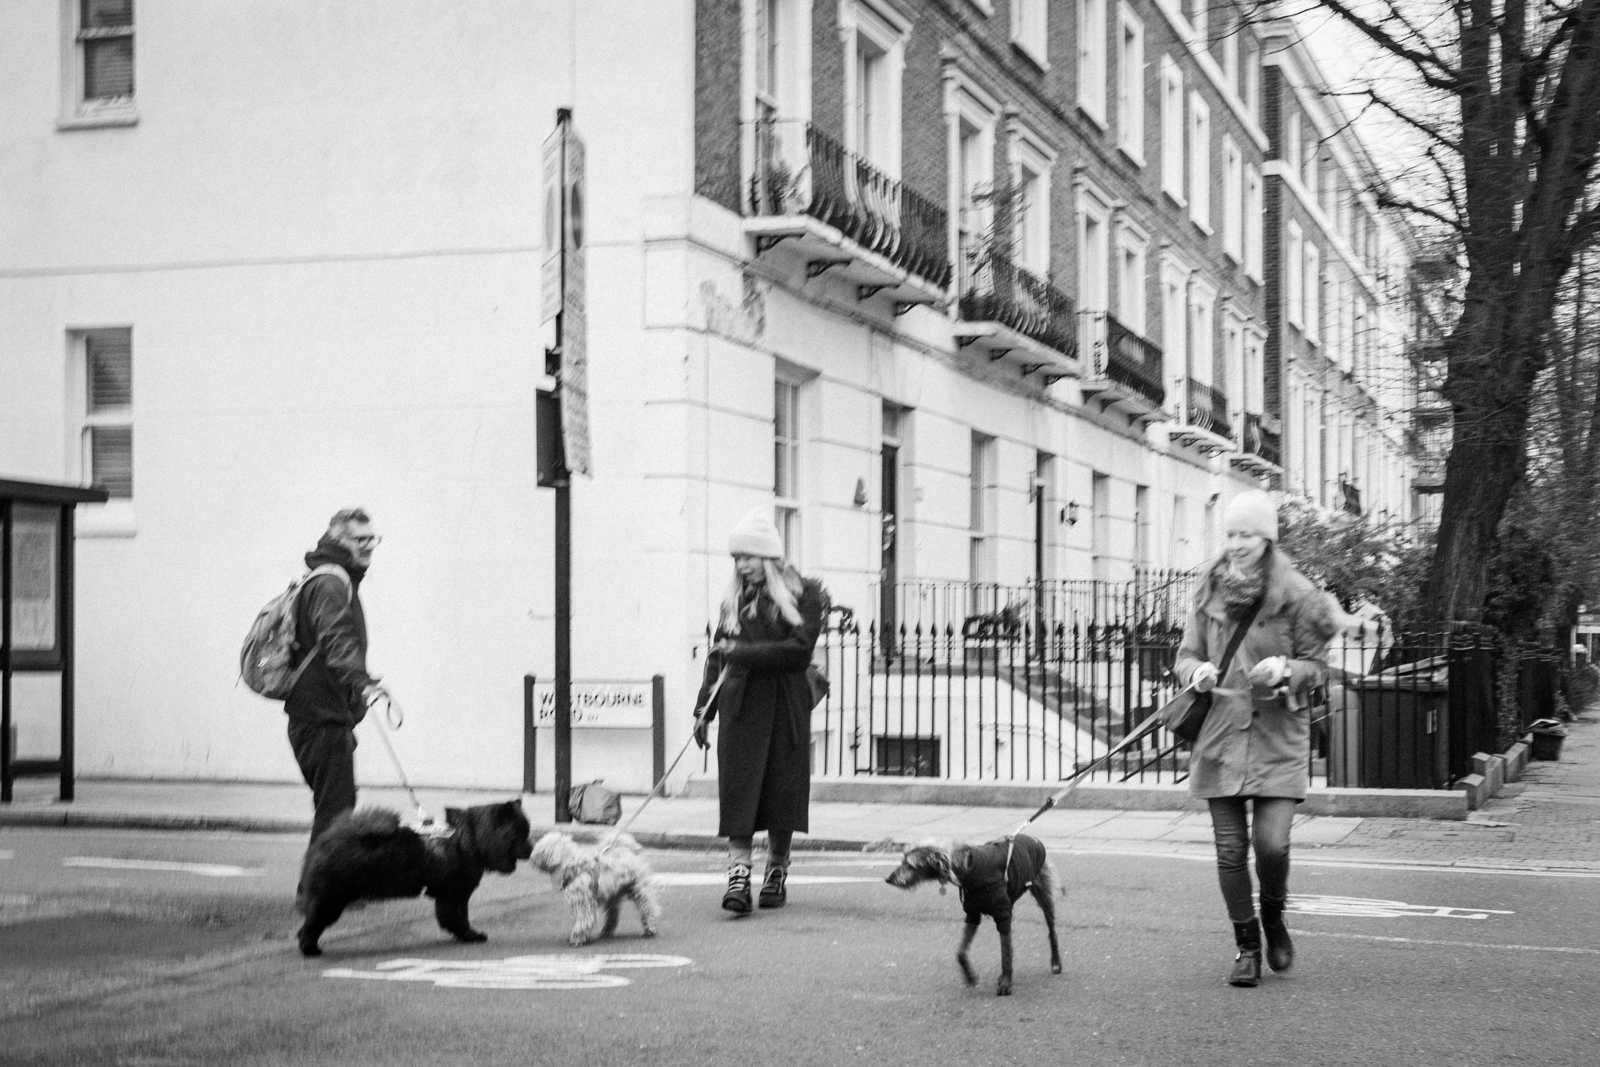 Three people walking their dogs